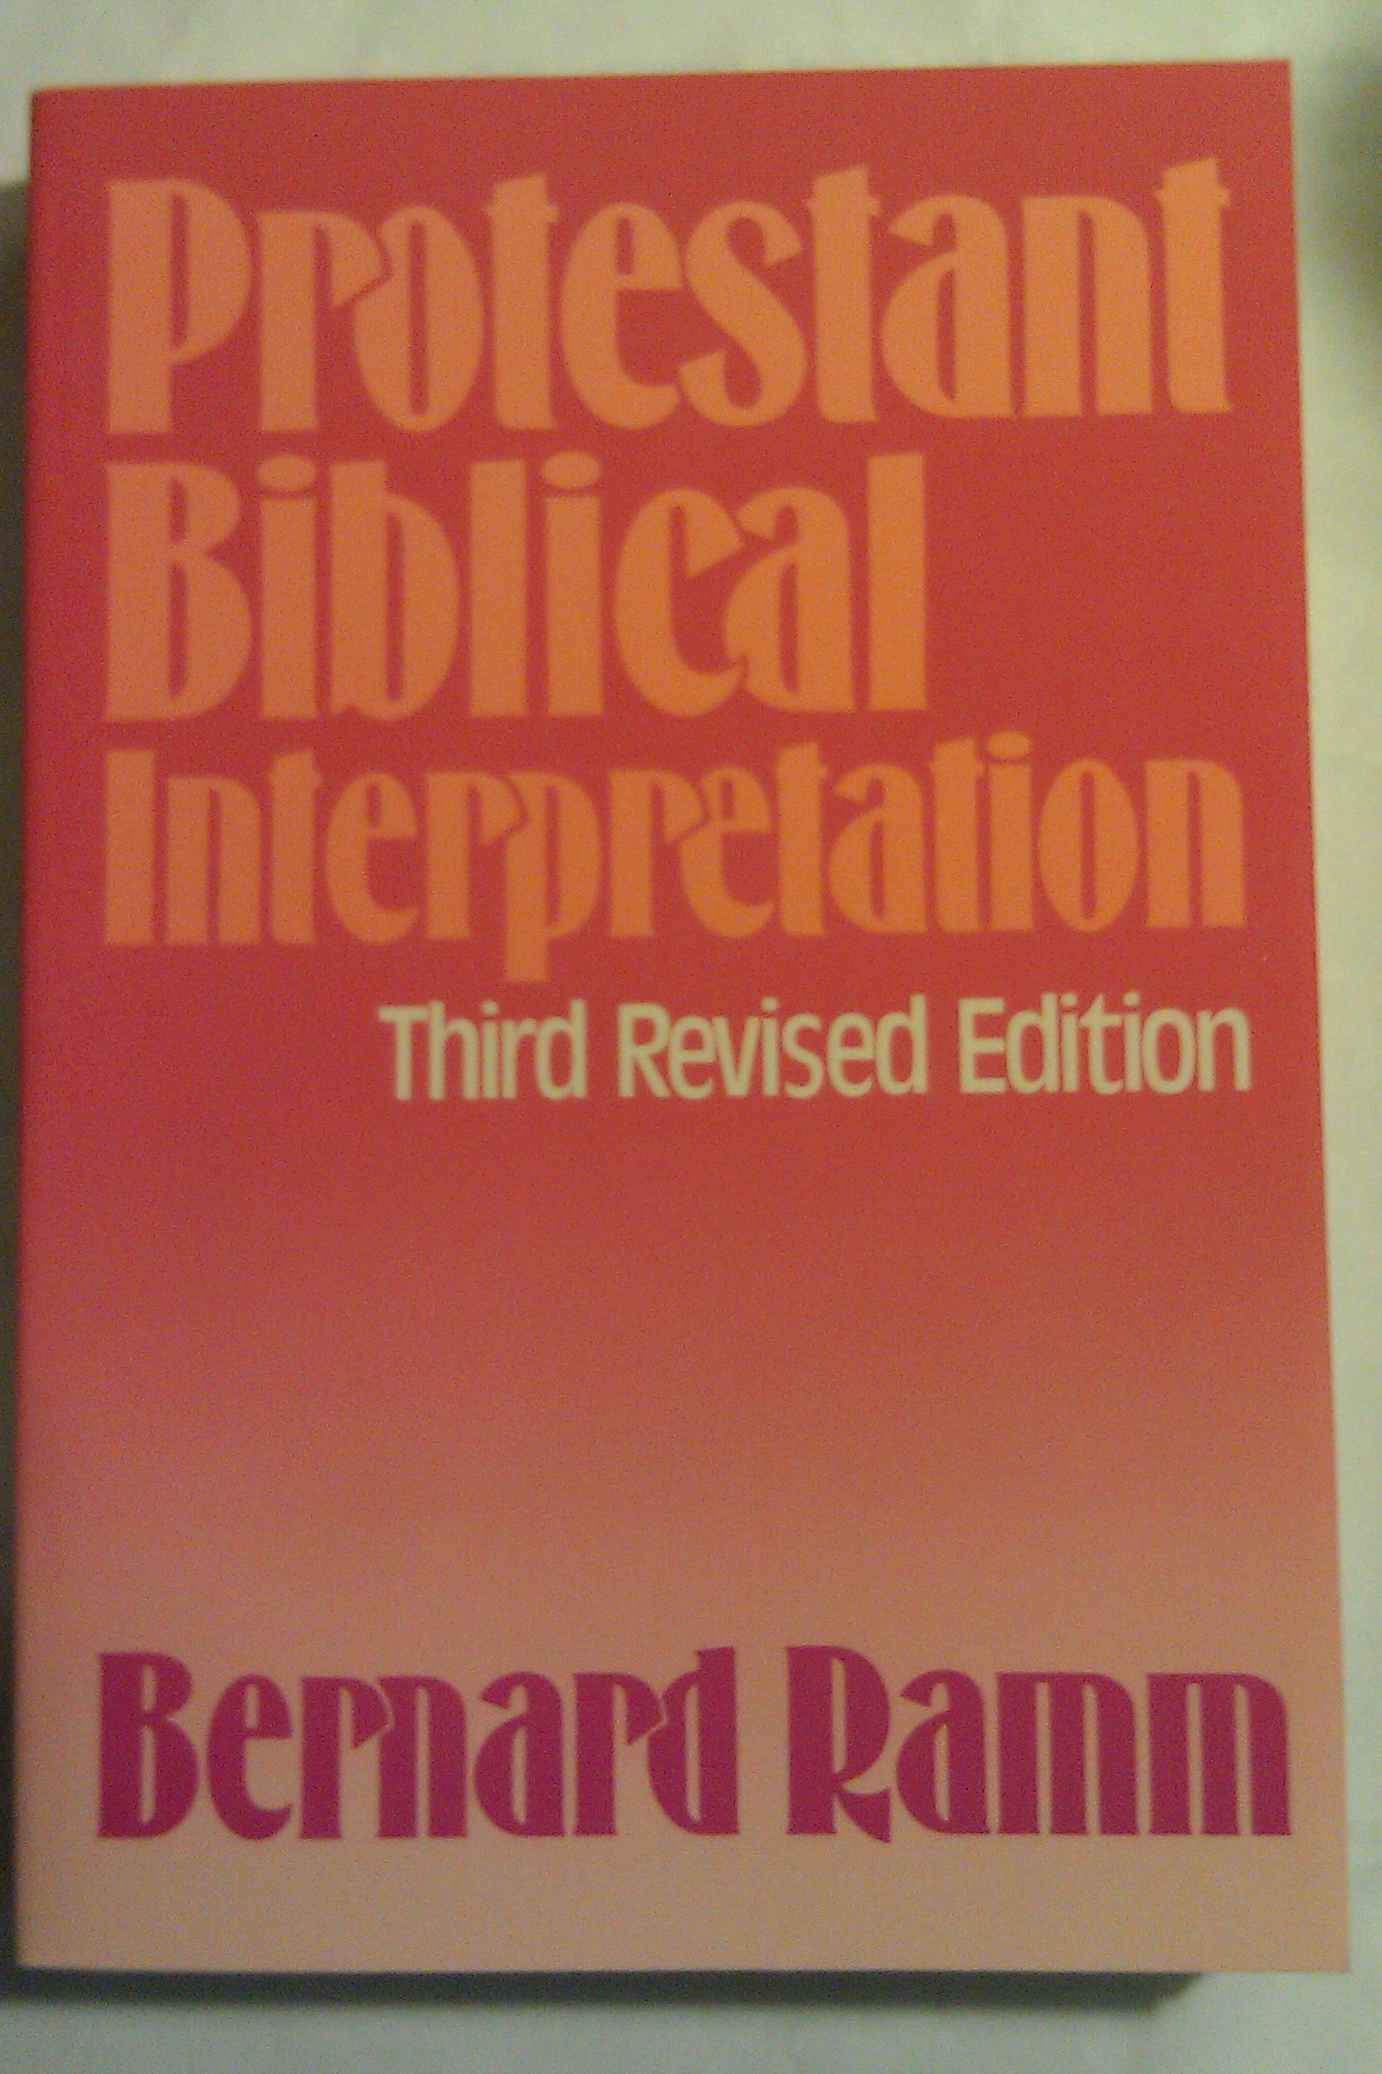 Protestant Biblical Interpretation